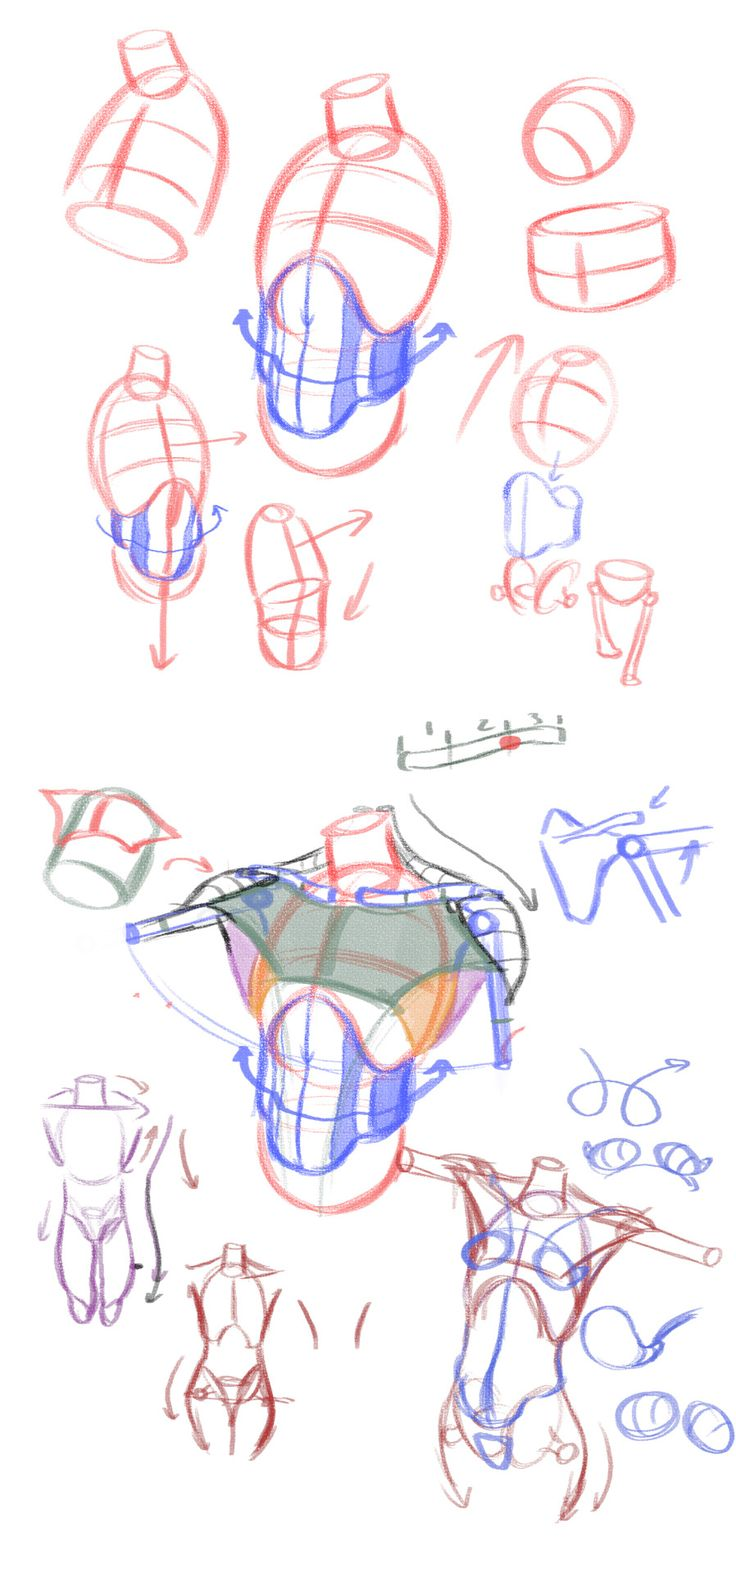 radfordsechrist: You can sign up for Construction... - Art References